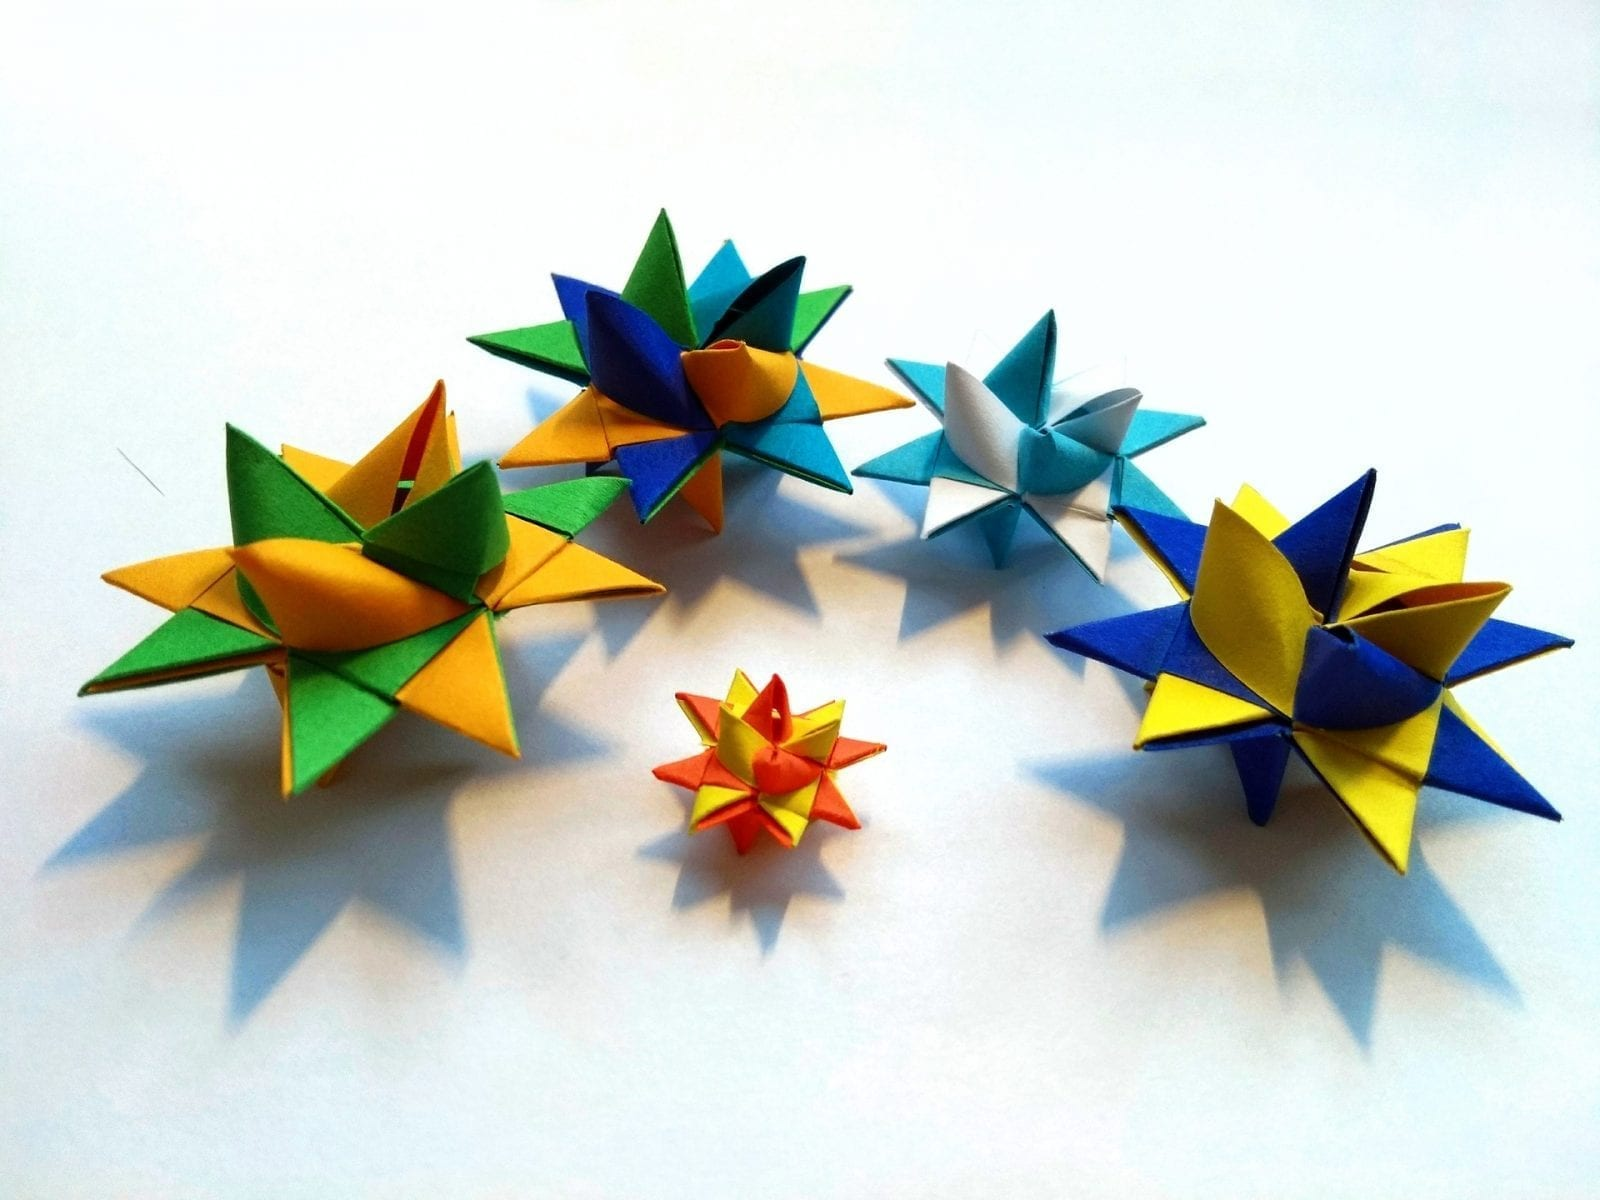 What is a Froebel Star – German Paper Folded Christmas Stars